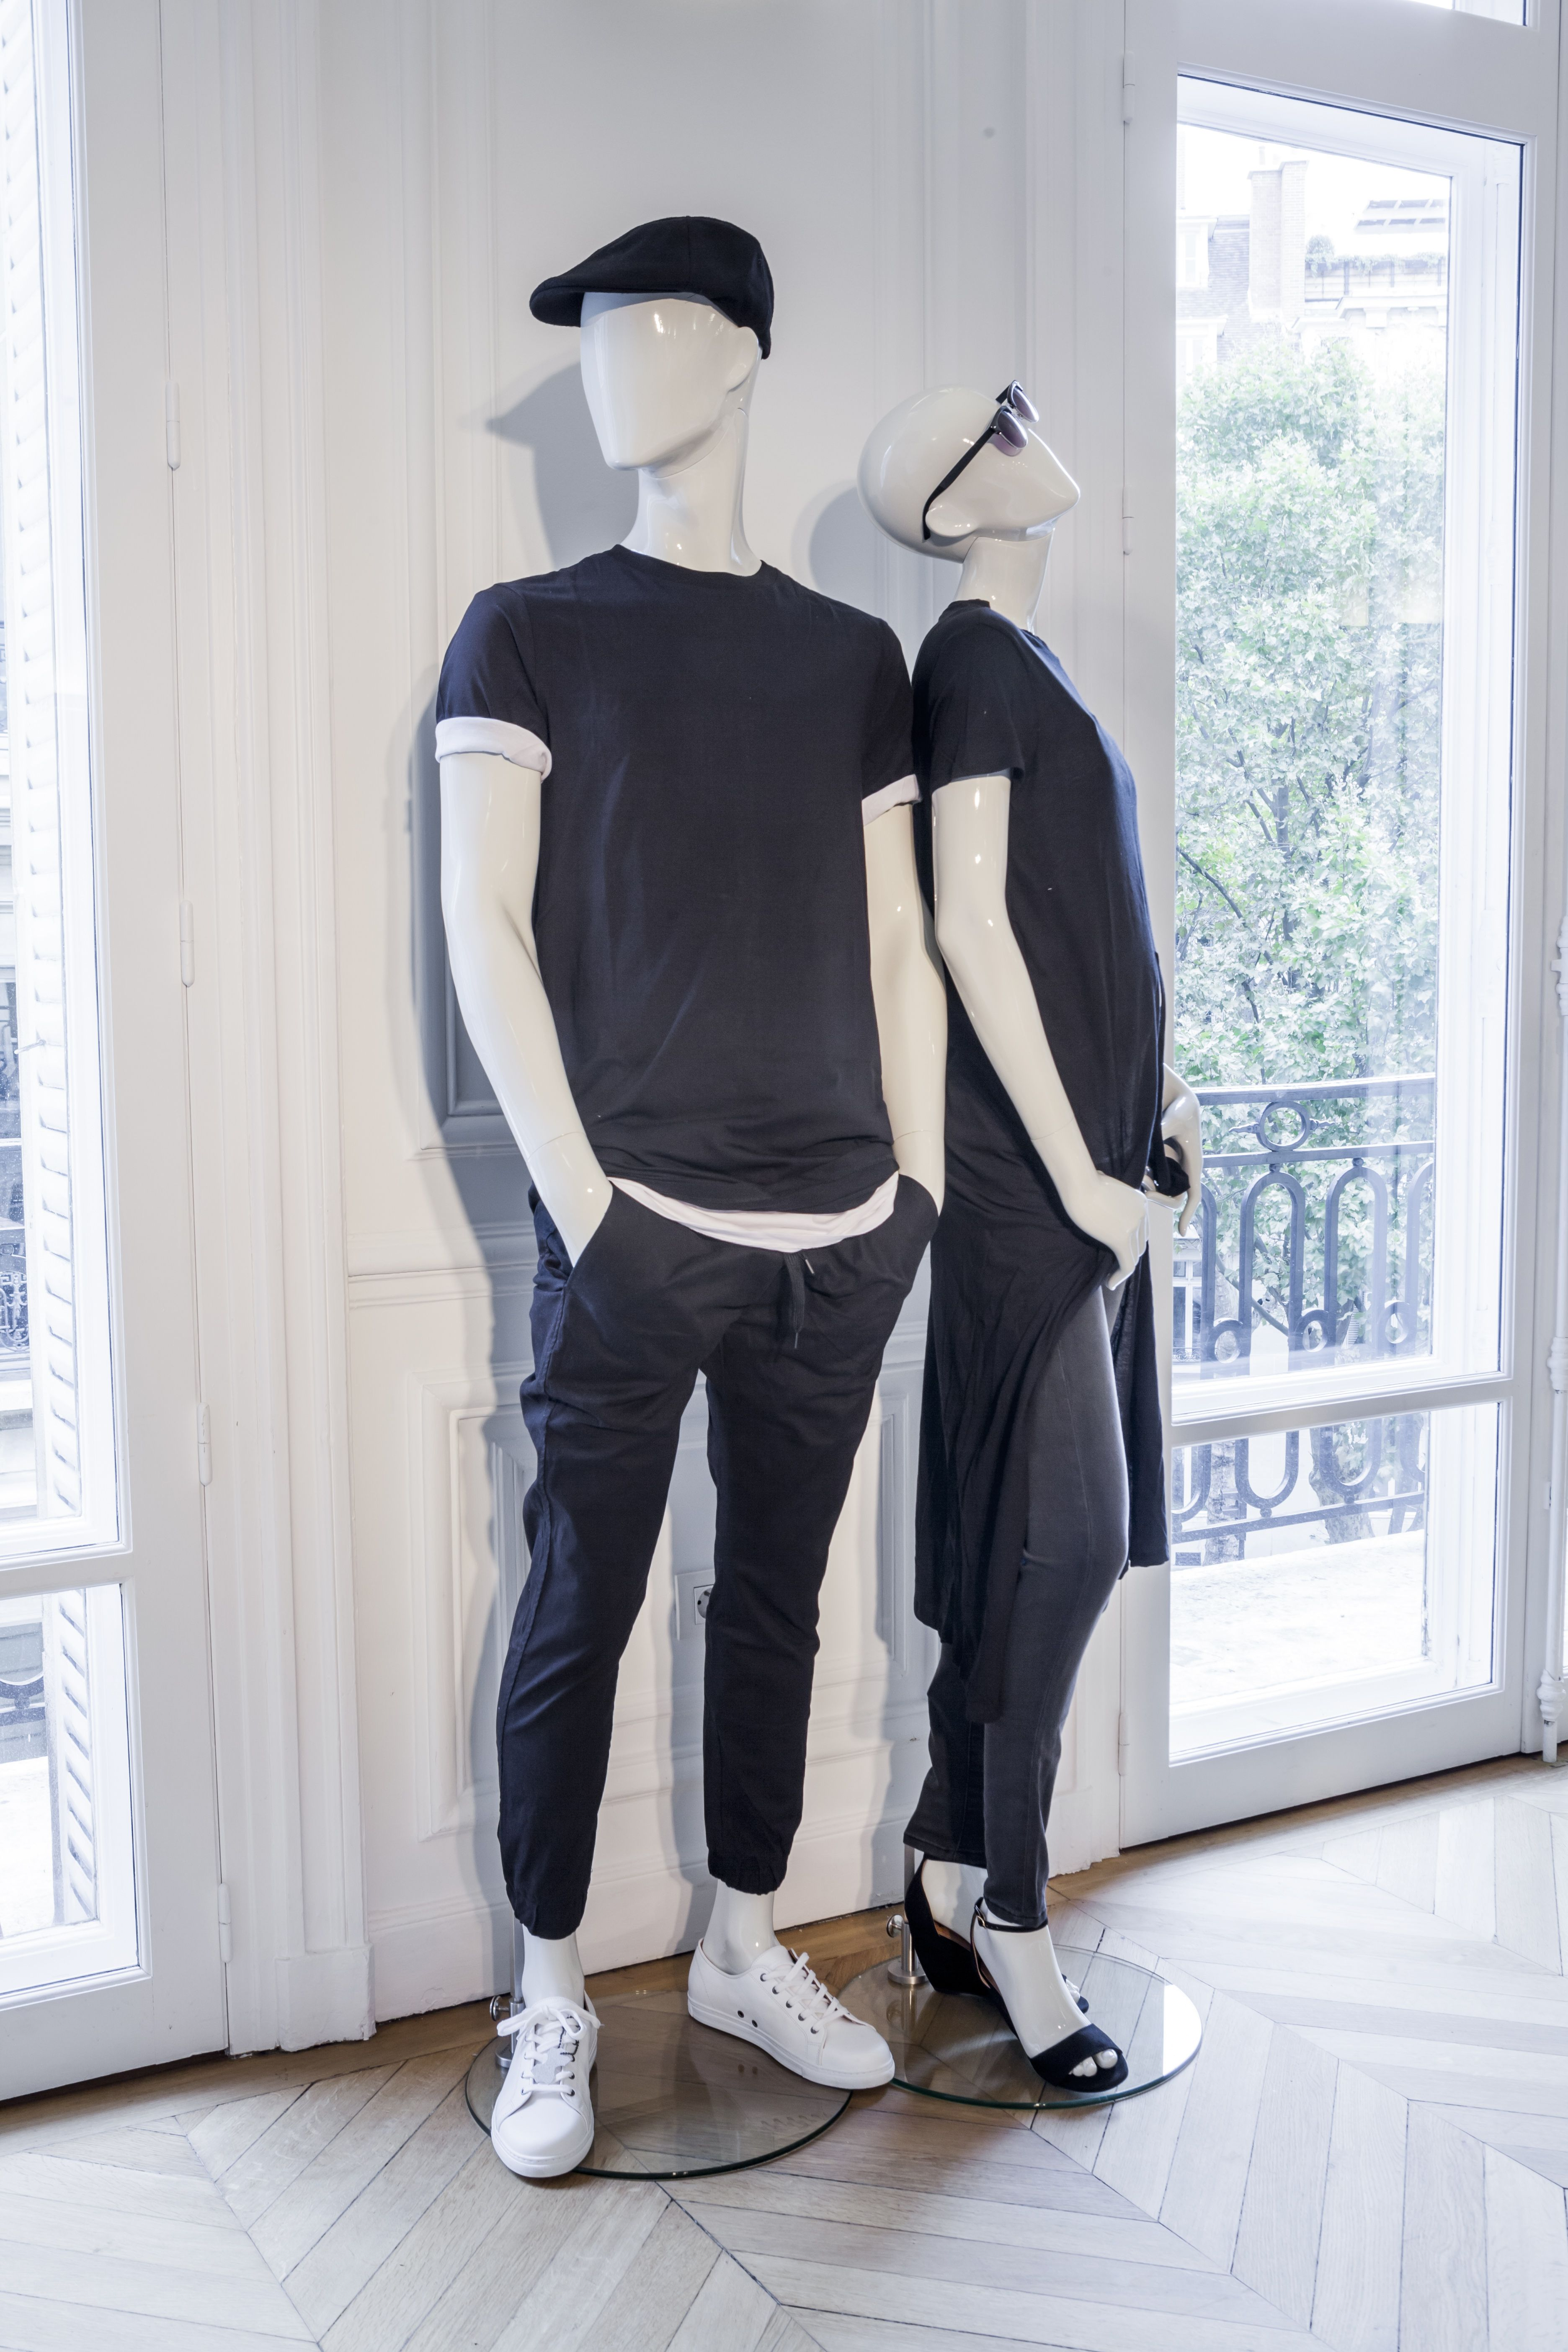 Maniqui Escaparate Blend Launch Showroom Hans Boodt Mannequins Atelier